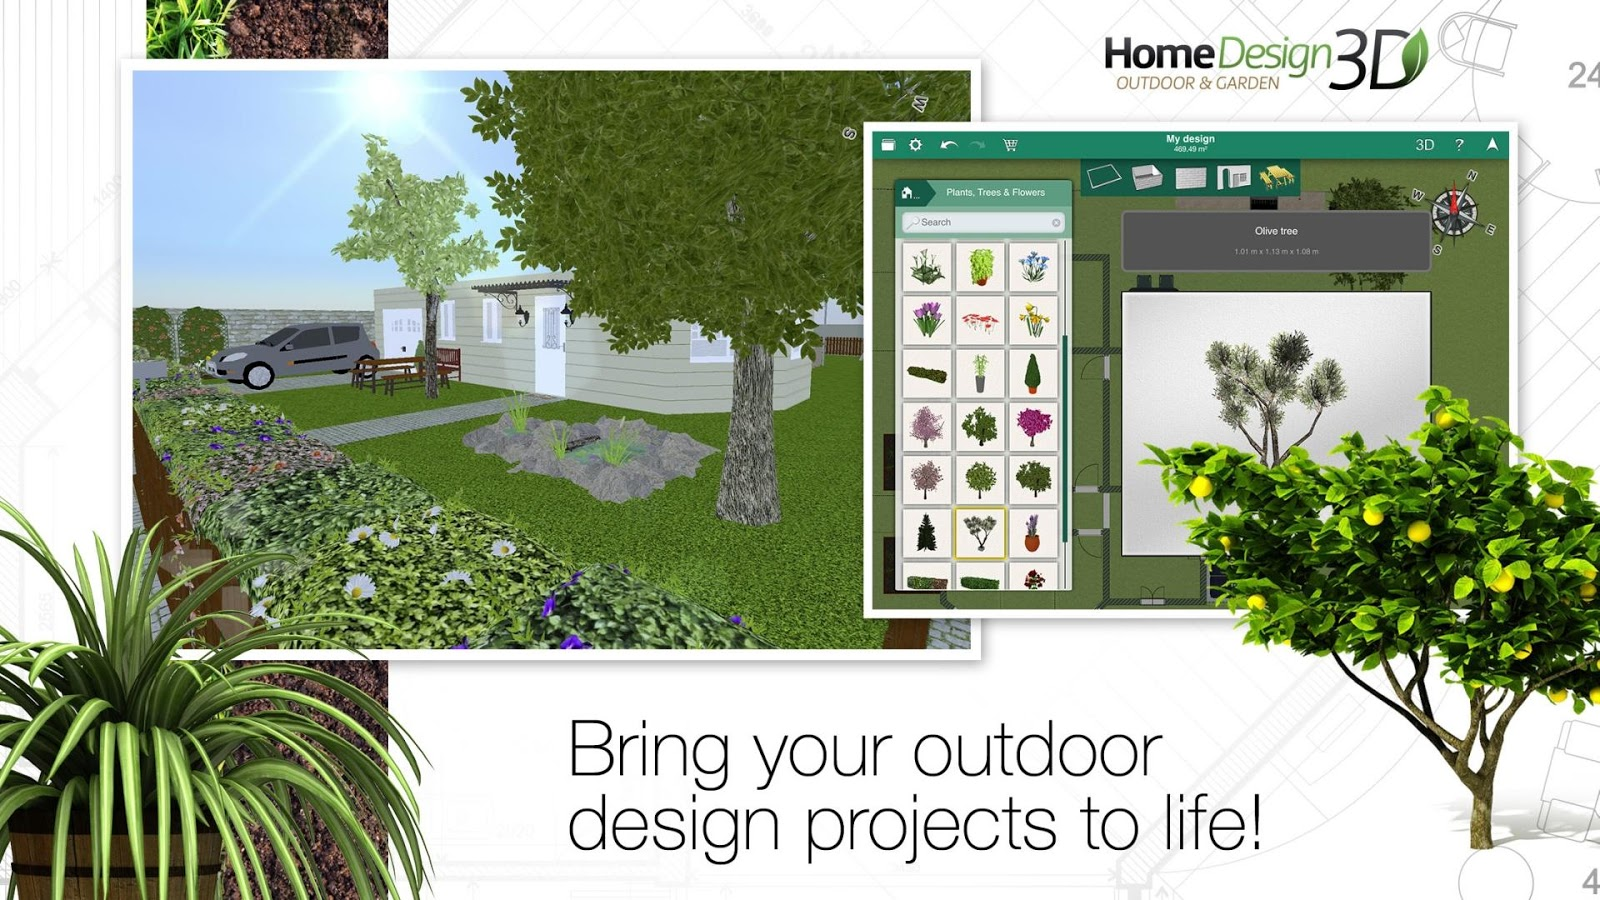 Home design 3d outdoor garden slides into the play store Online 3d design maker